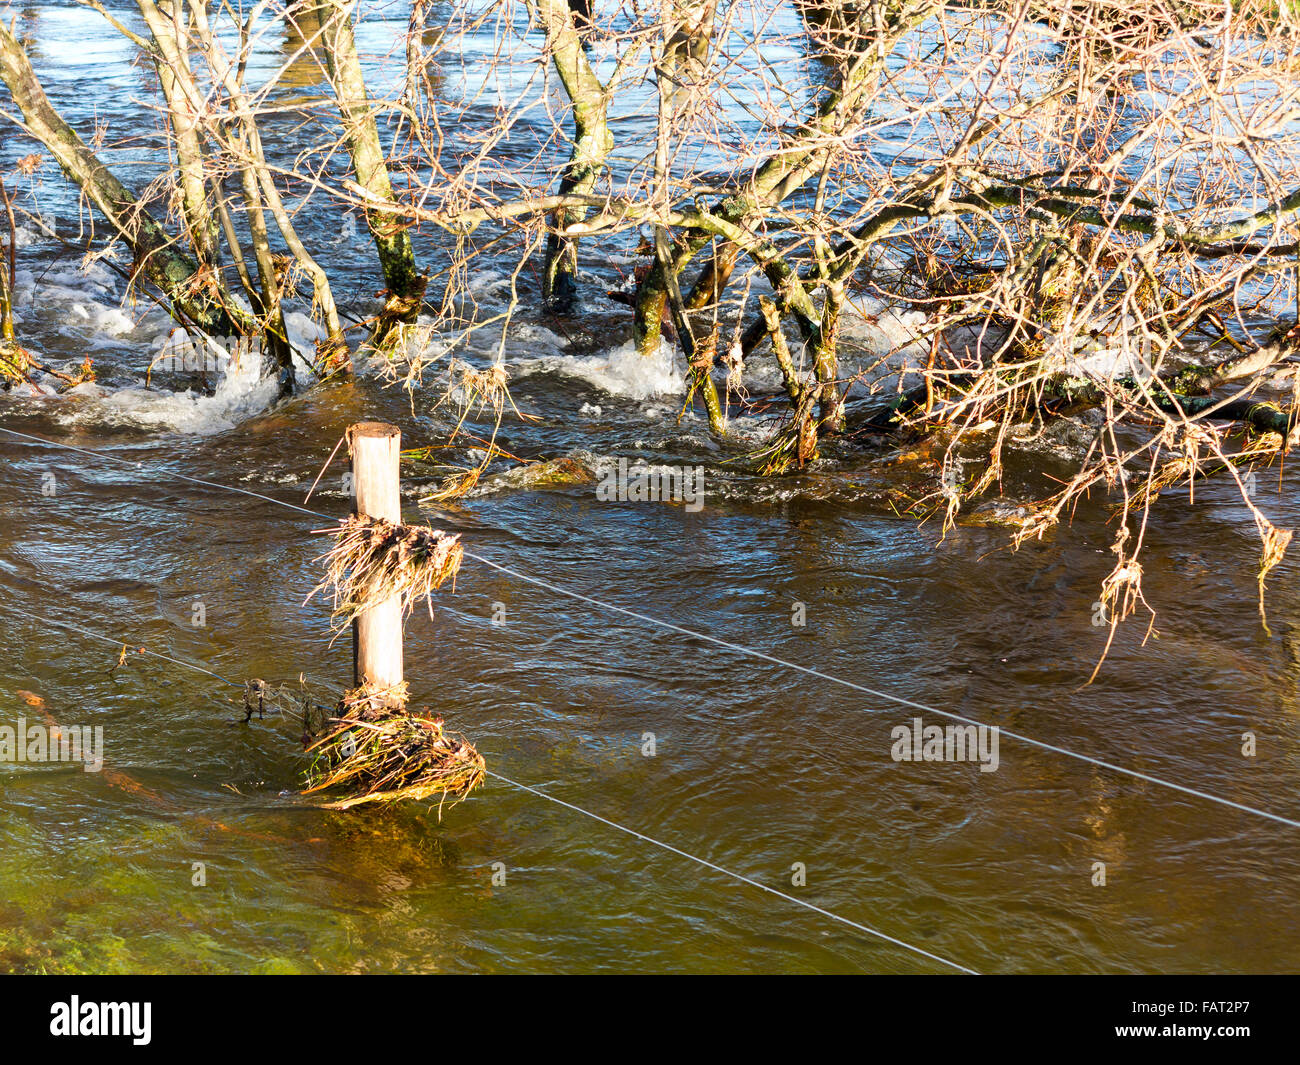 Partly submerged fire fence and bushes containing flood debris - Stock Image